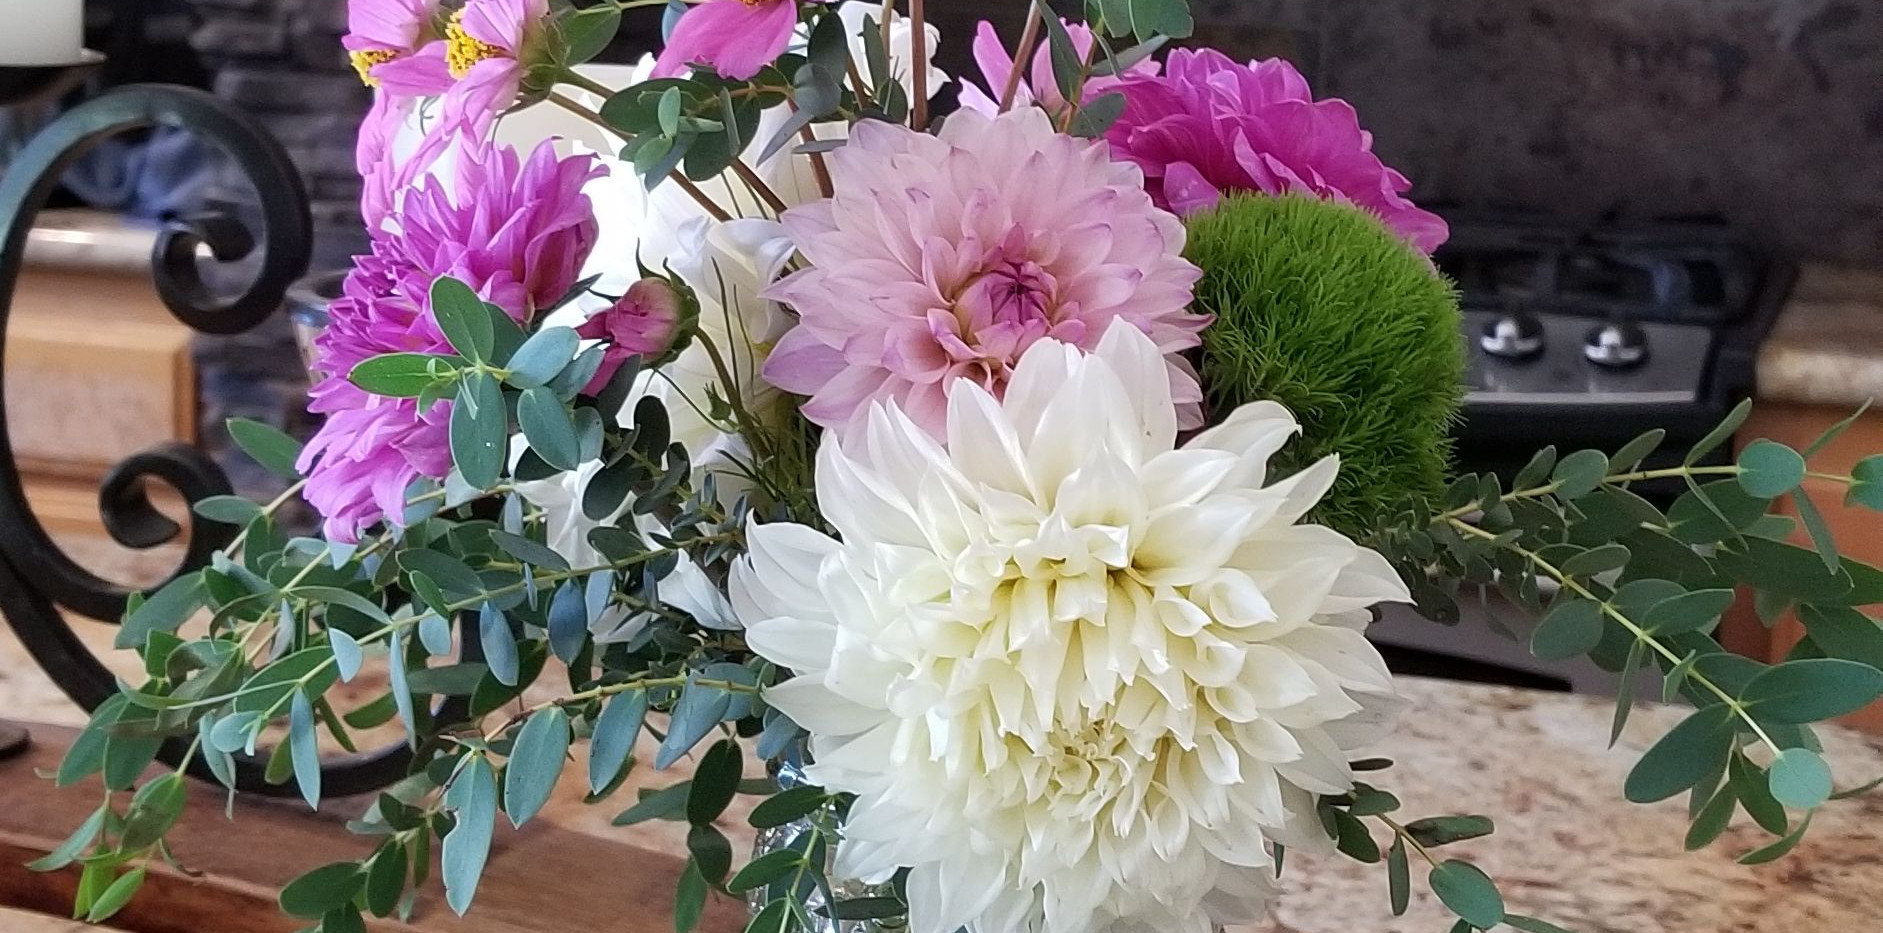 Bouquet Samples -Dahlias1.jpg